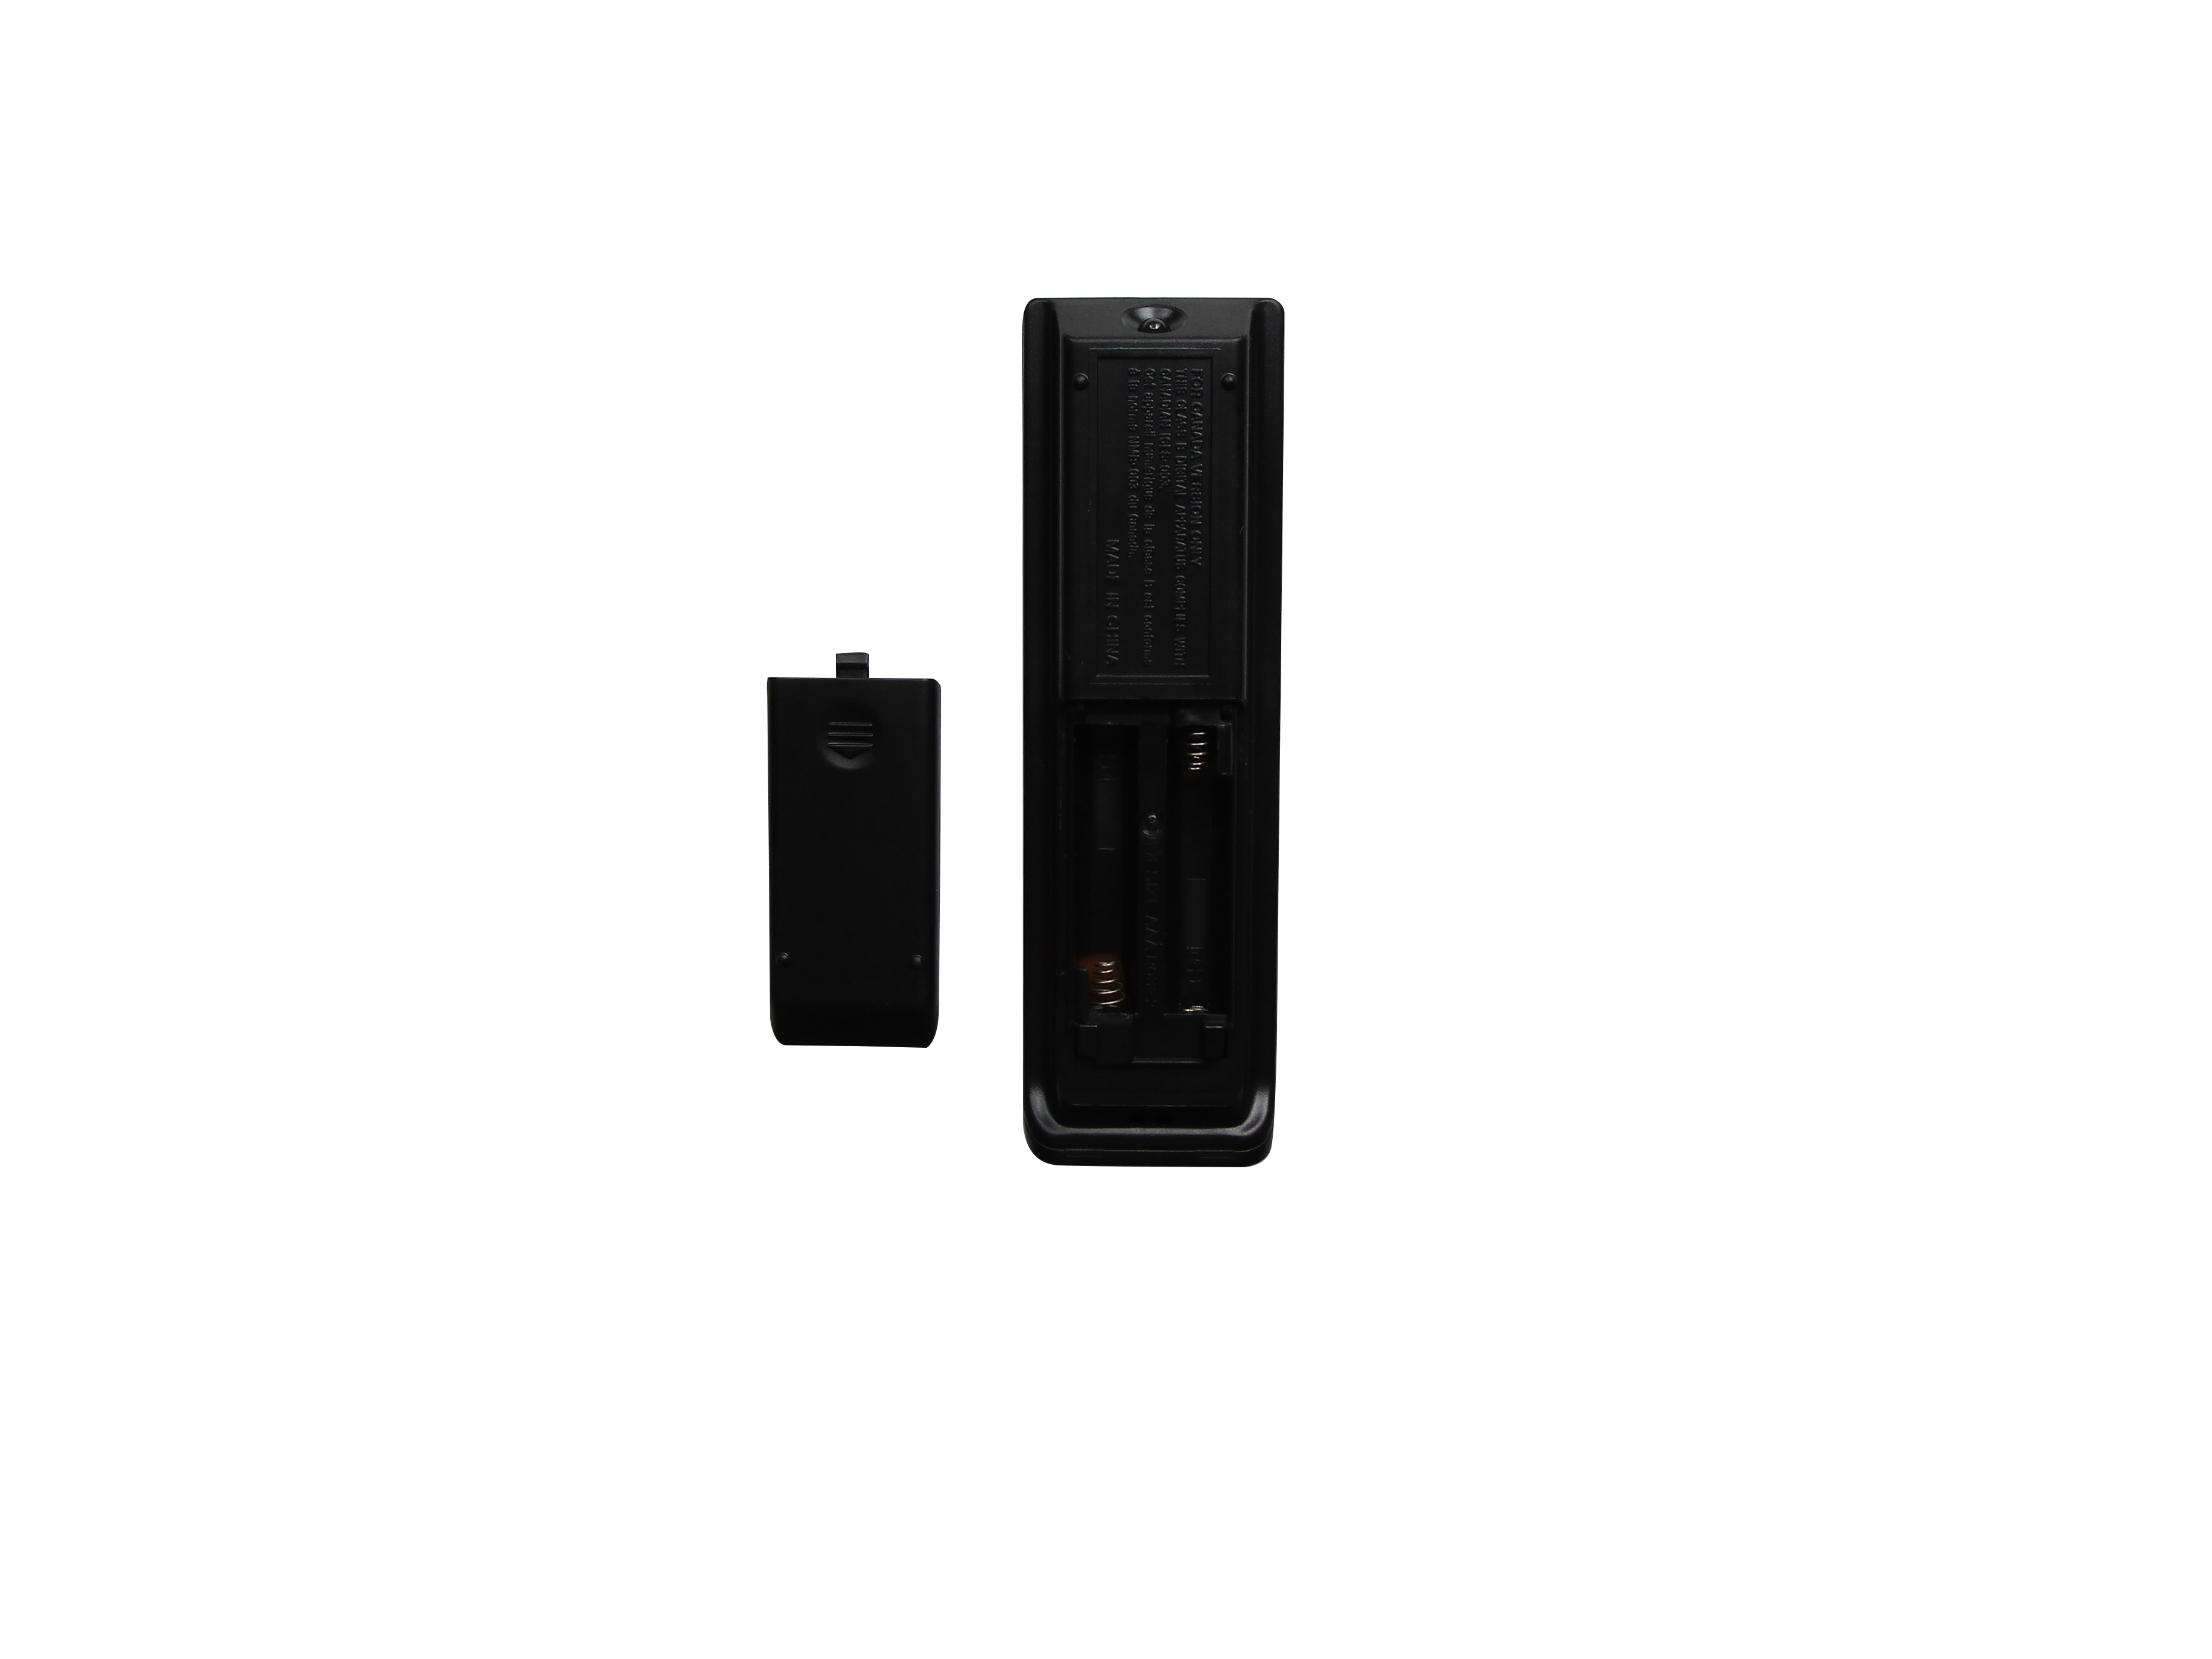 Remote Control For Sony RMT-CYN7A ZS-SN10PS RMT-CYN7 RMT-CYN7AD ZS-SN10 ZS-SN10S  Portable Speaker Personal Audio Dock System